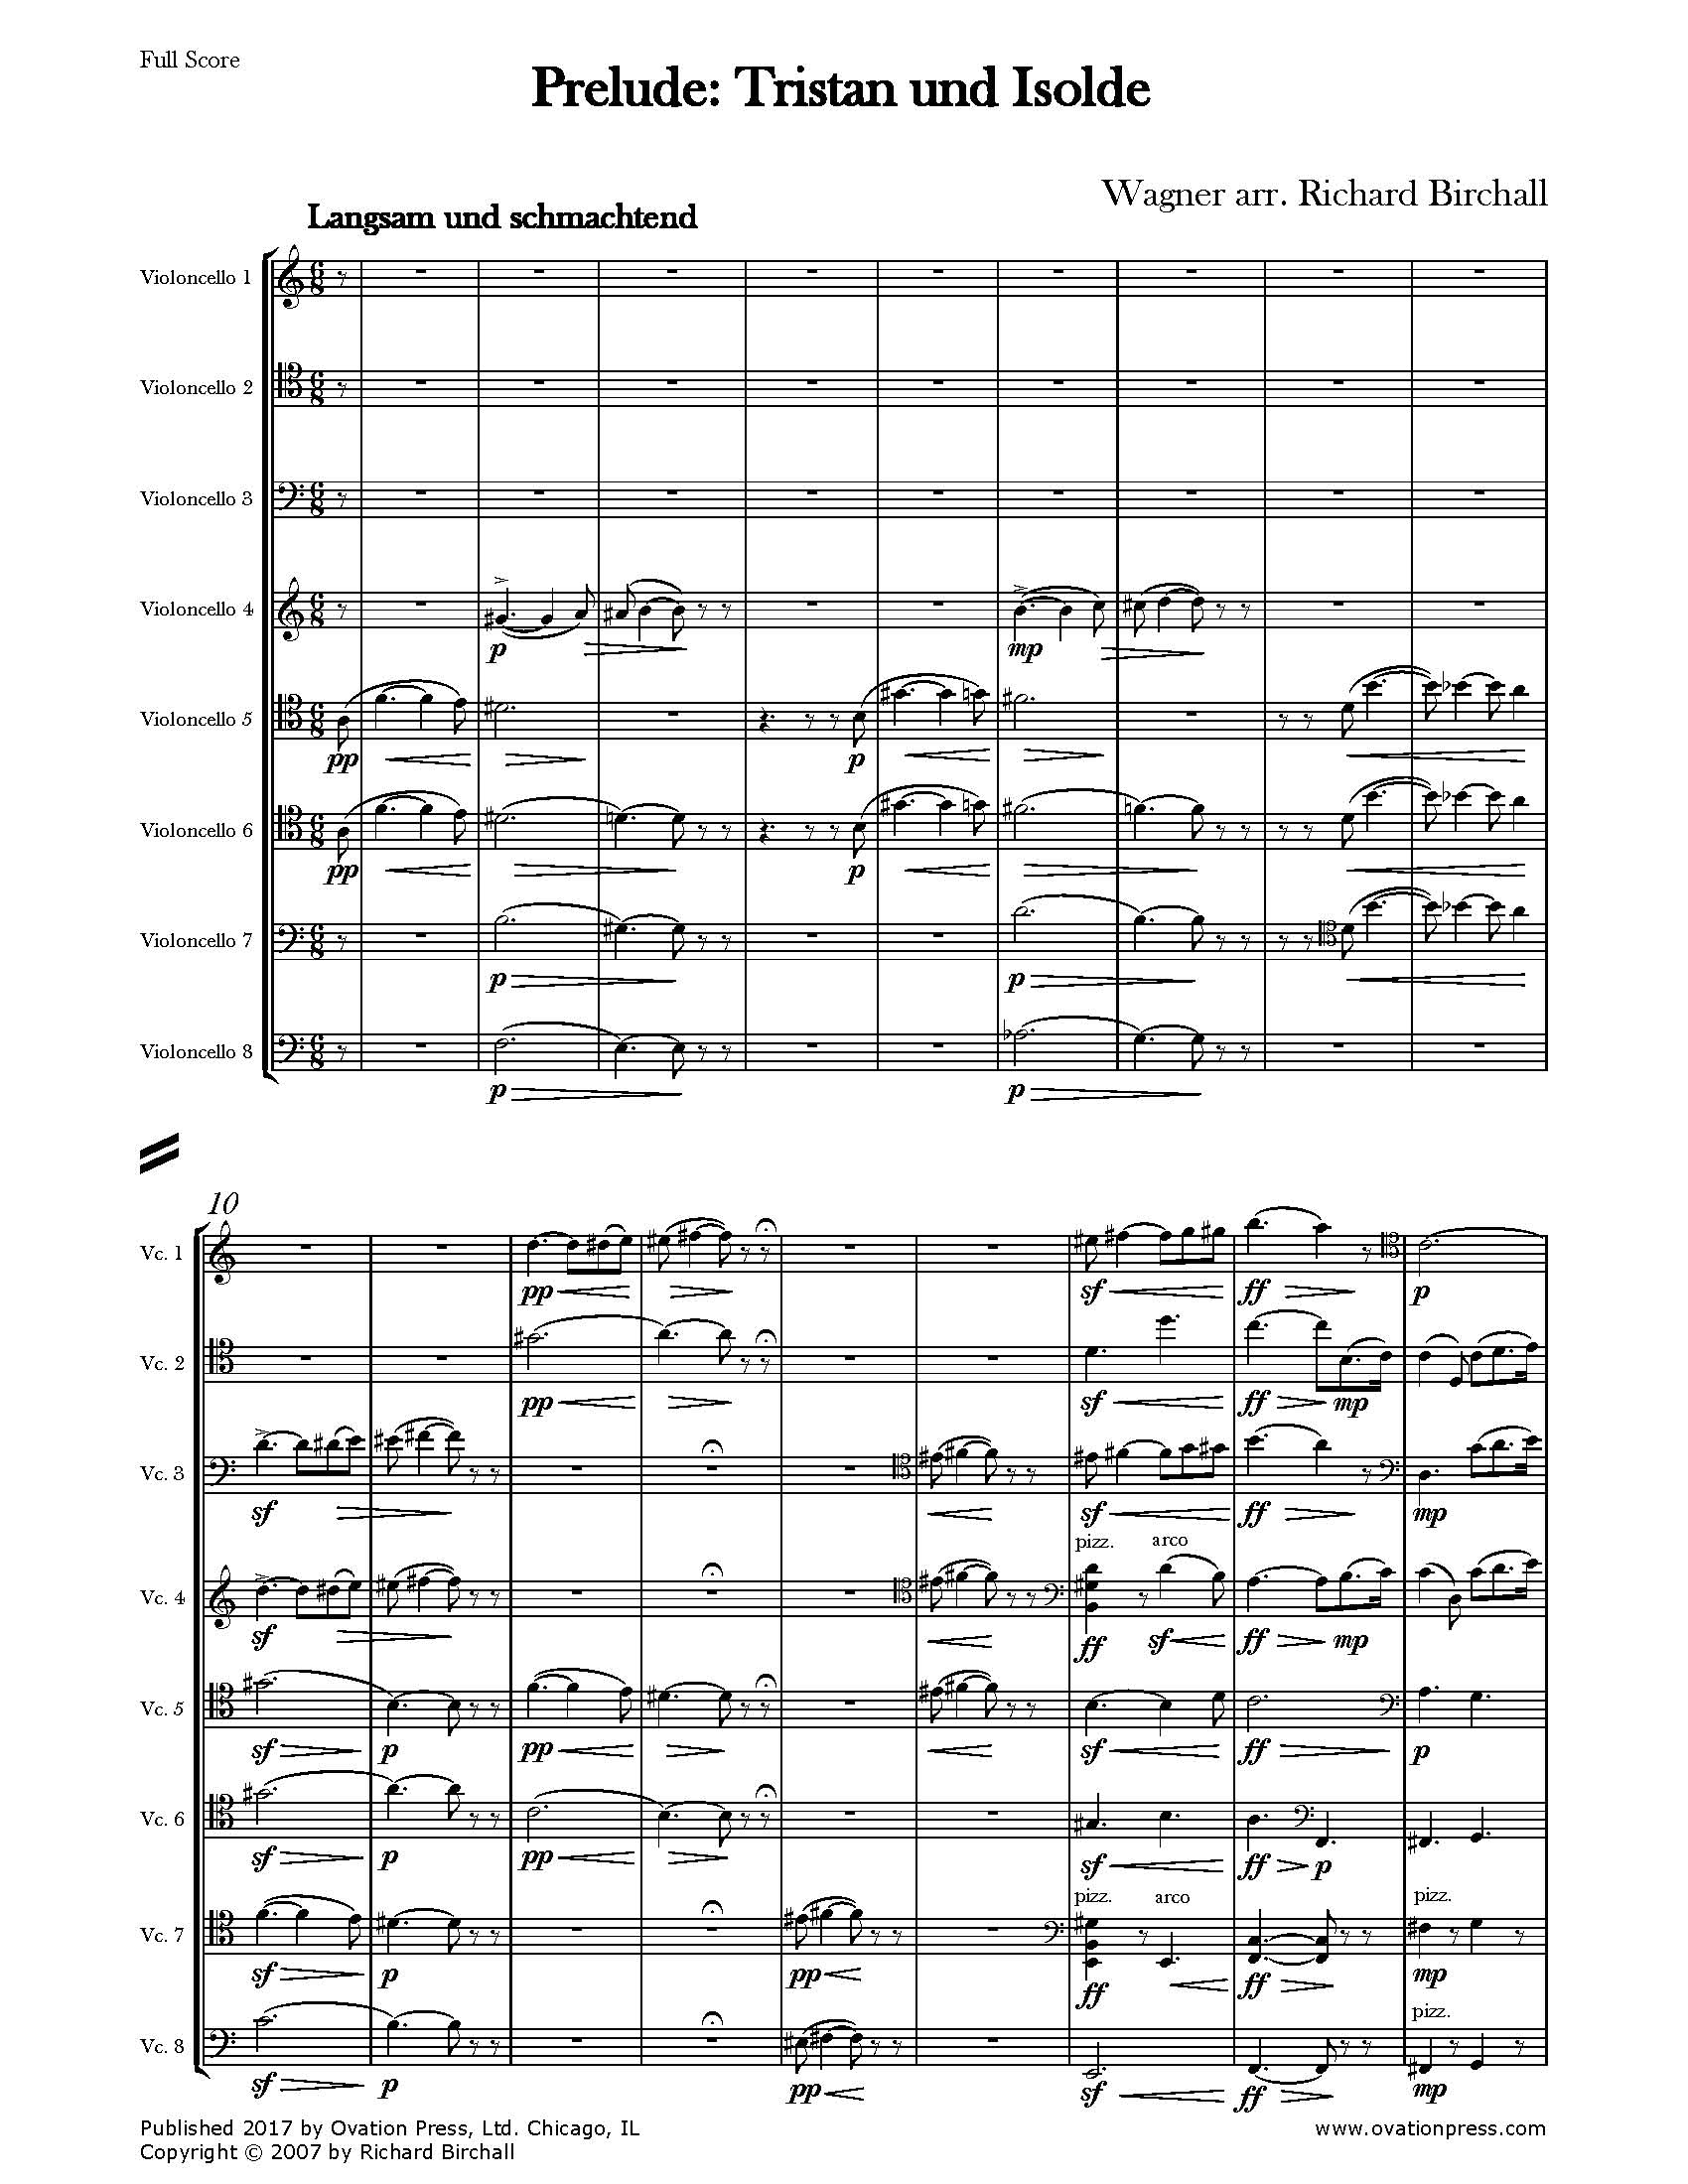 Prelude from Tristan und Isolde (for Cello Octet)